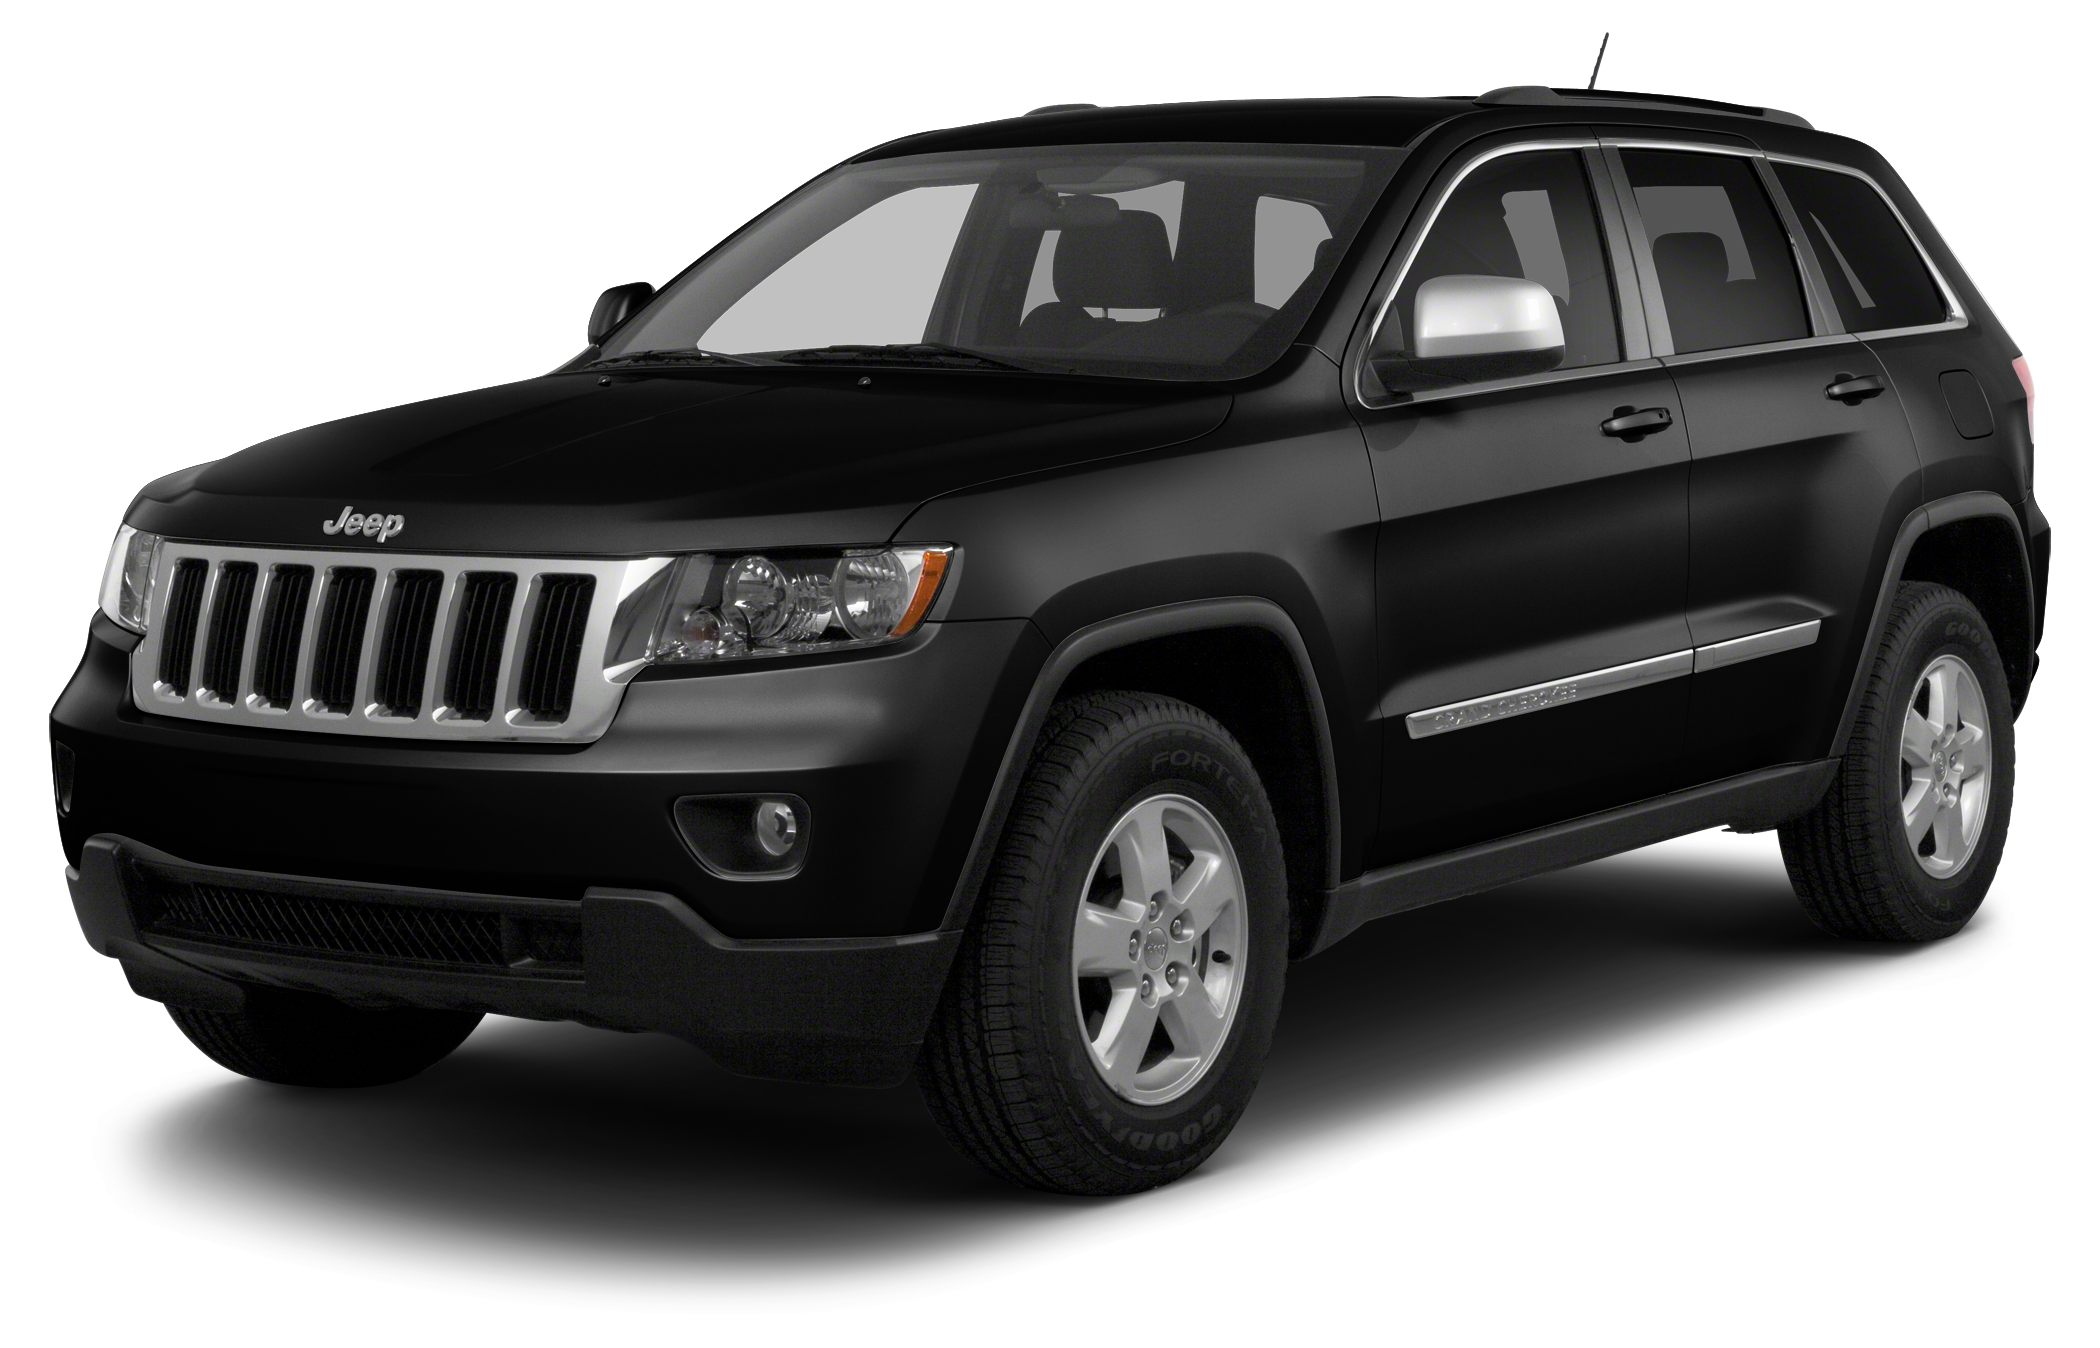 2013 Jeep Grand Cherokee Laredo Laredo trim CARFAX 1-Owner iPodMP3 Input CD Player Dual Zone A